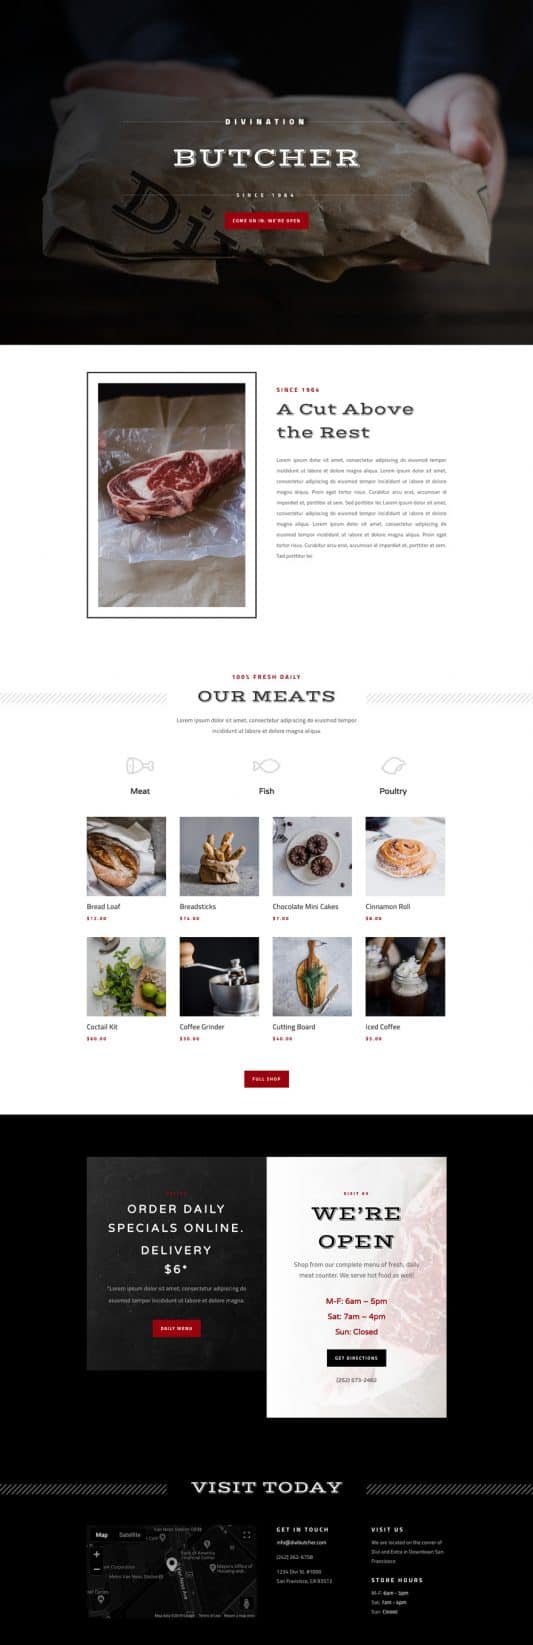 Butcher Home Page Style 1